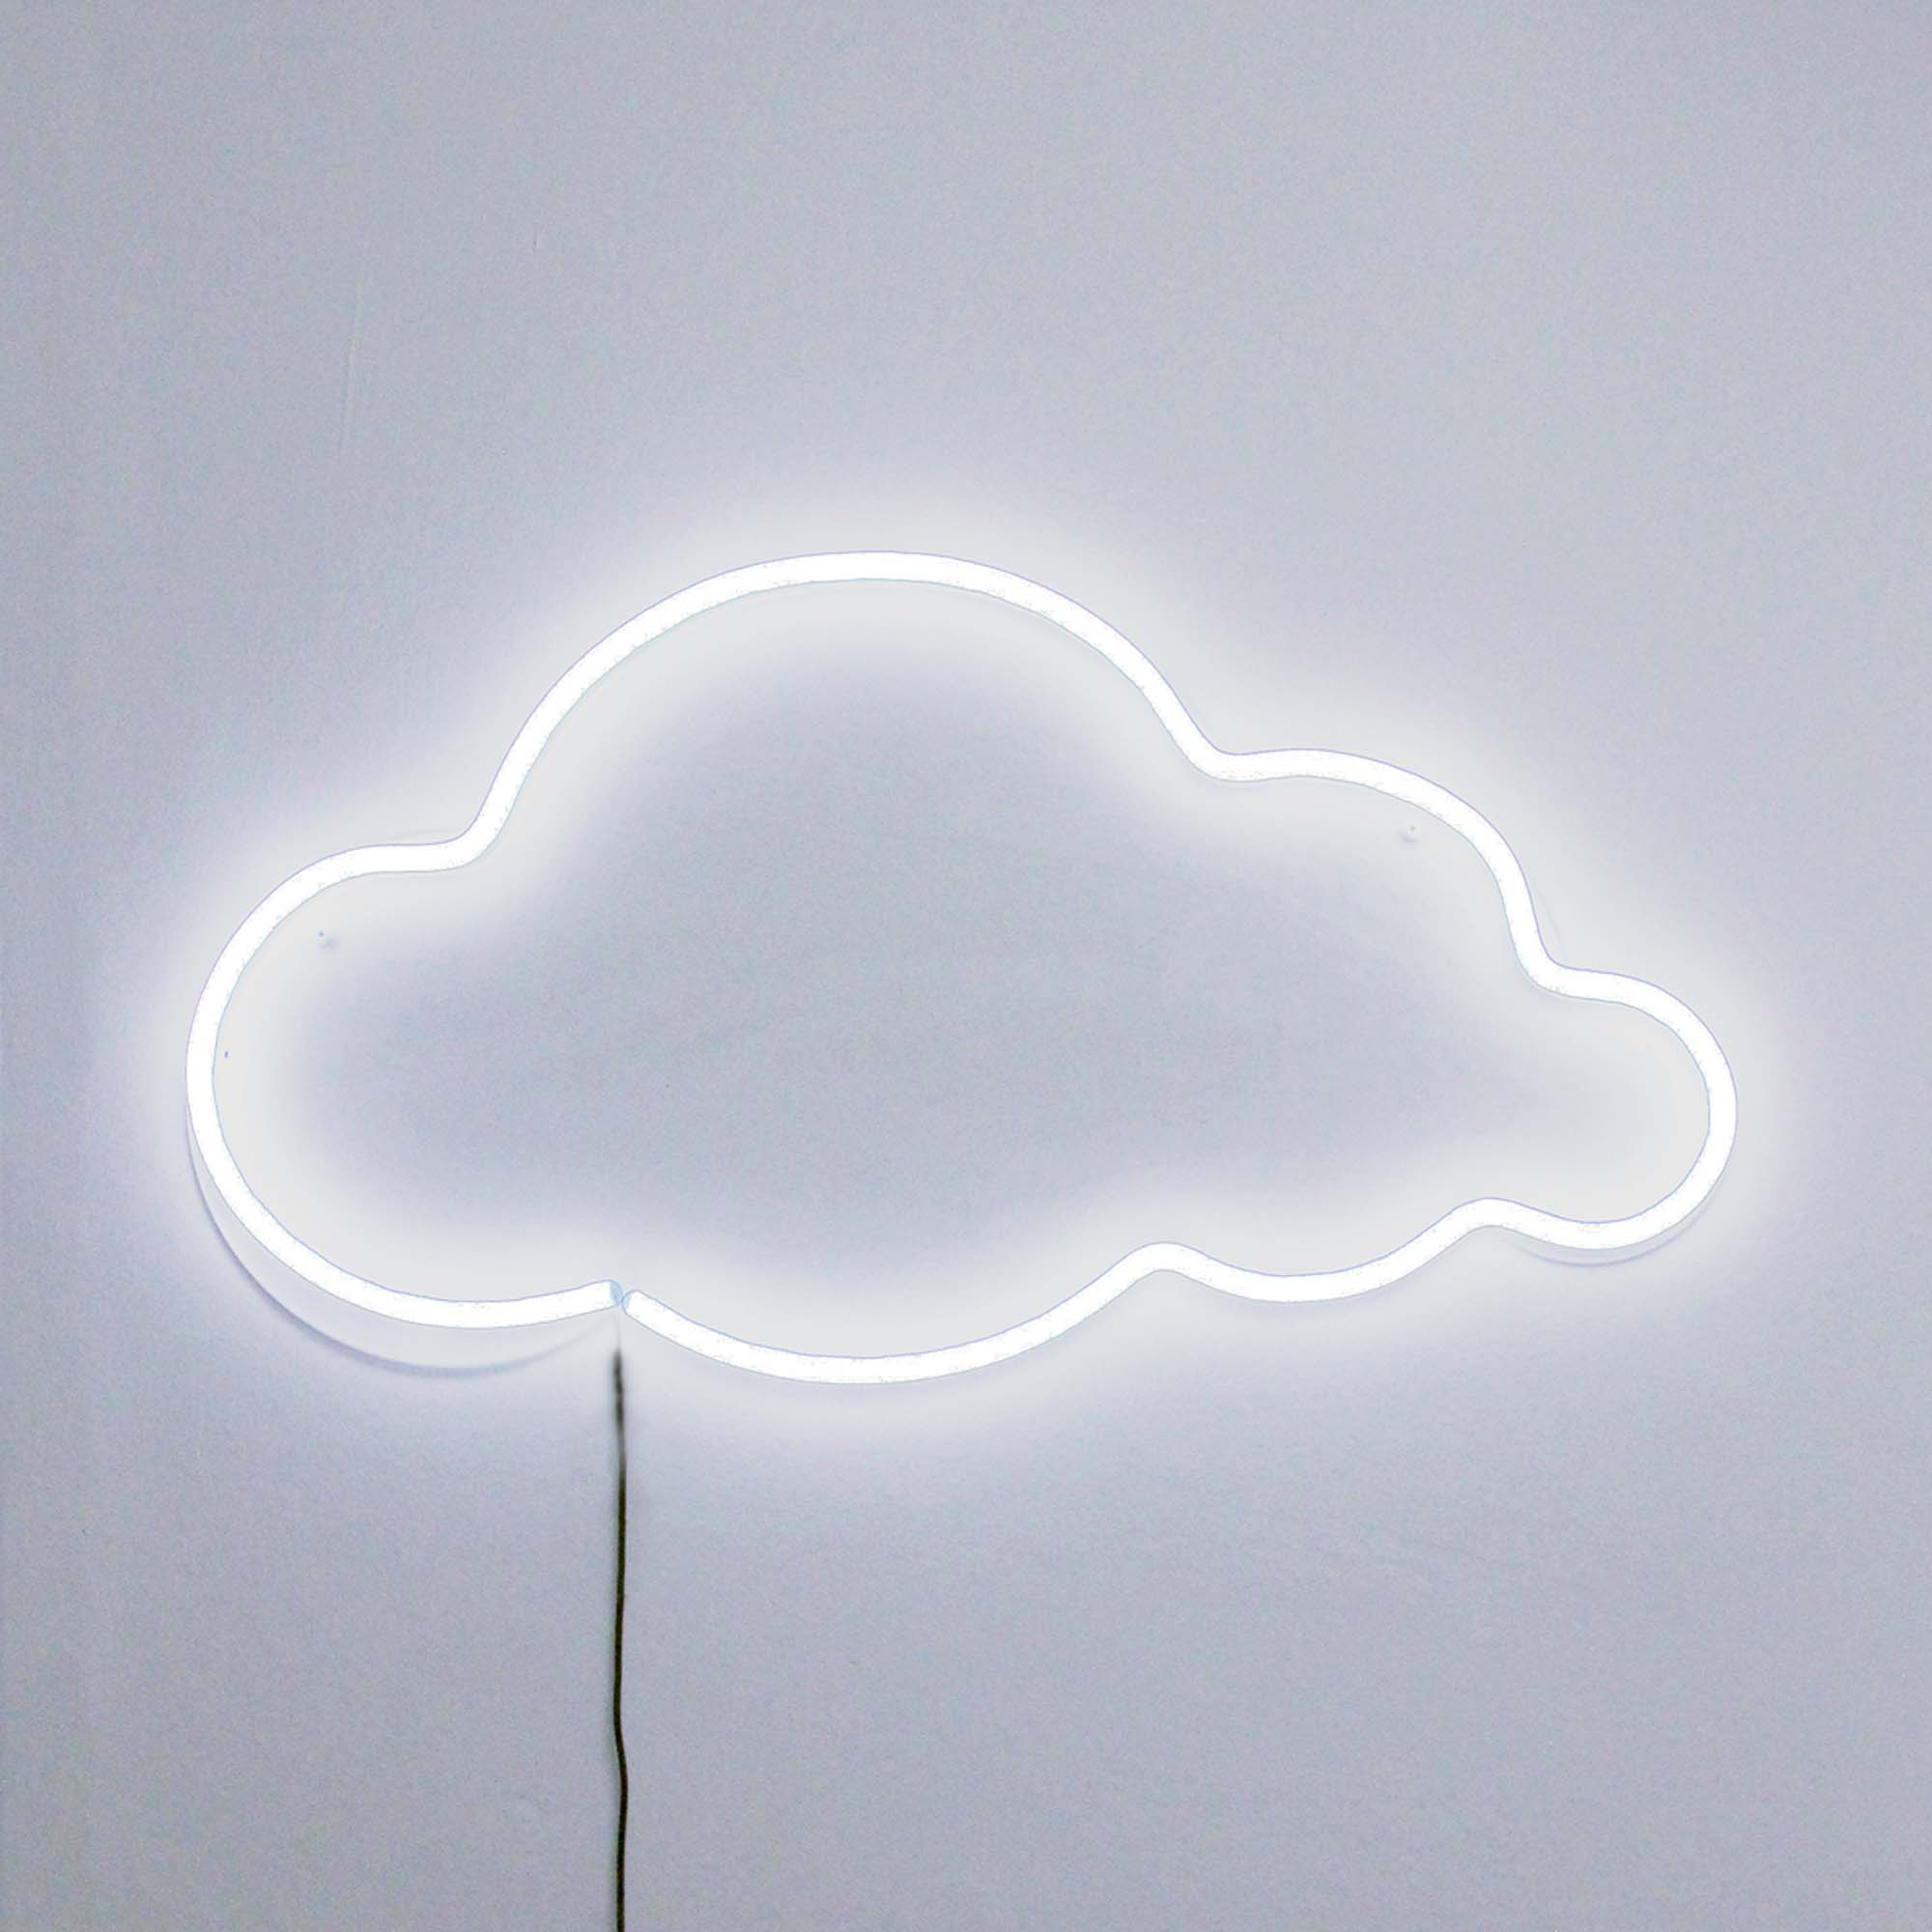 White neon cloud by Bxxlght